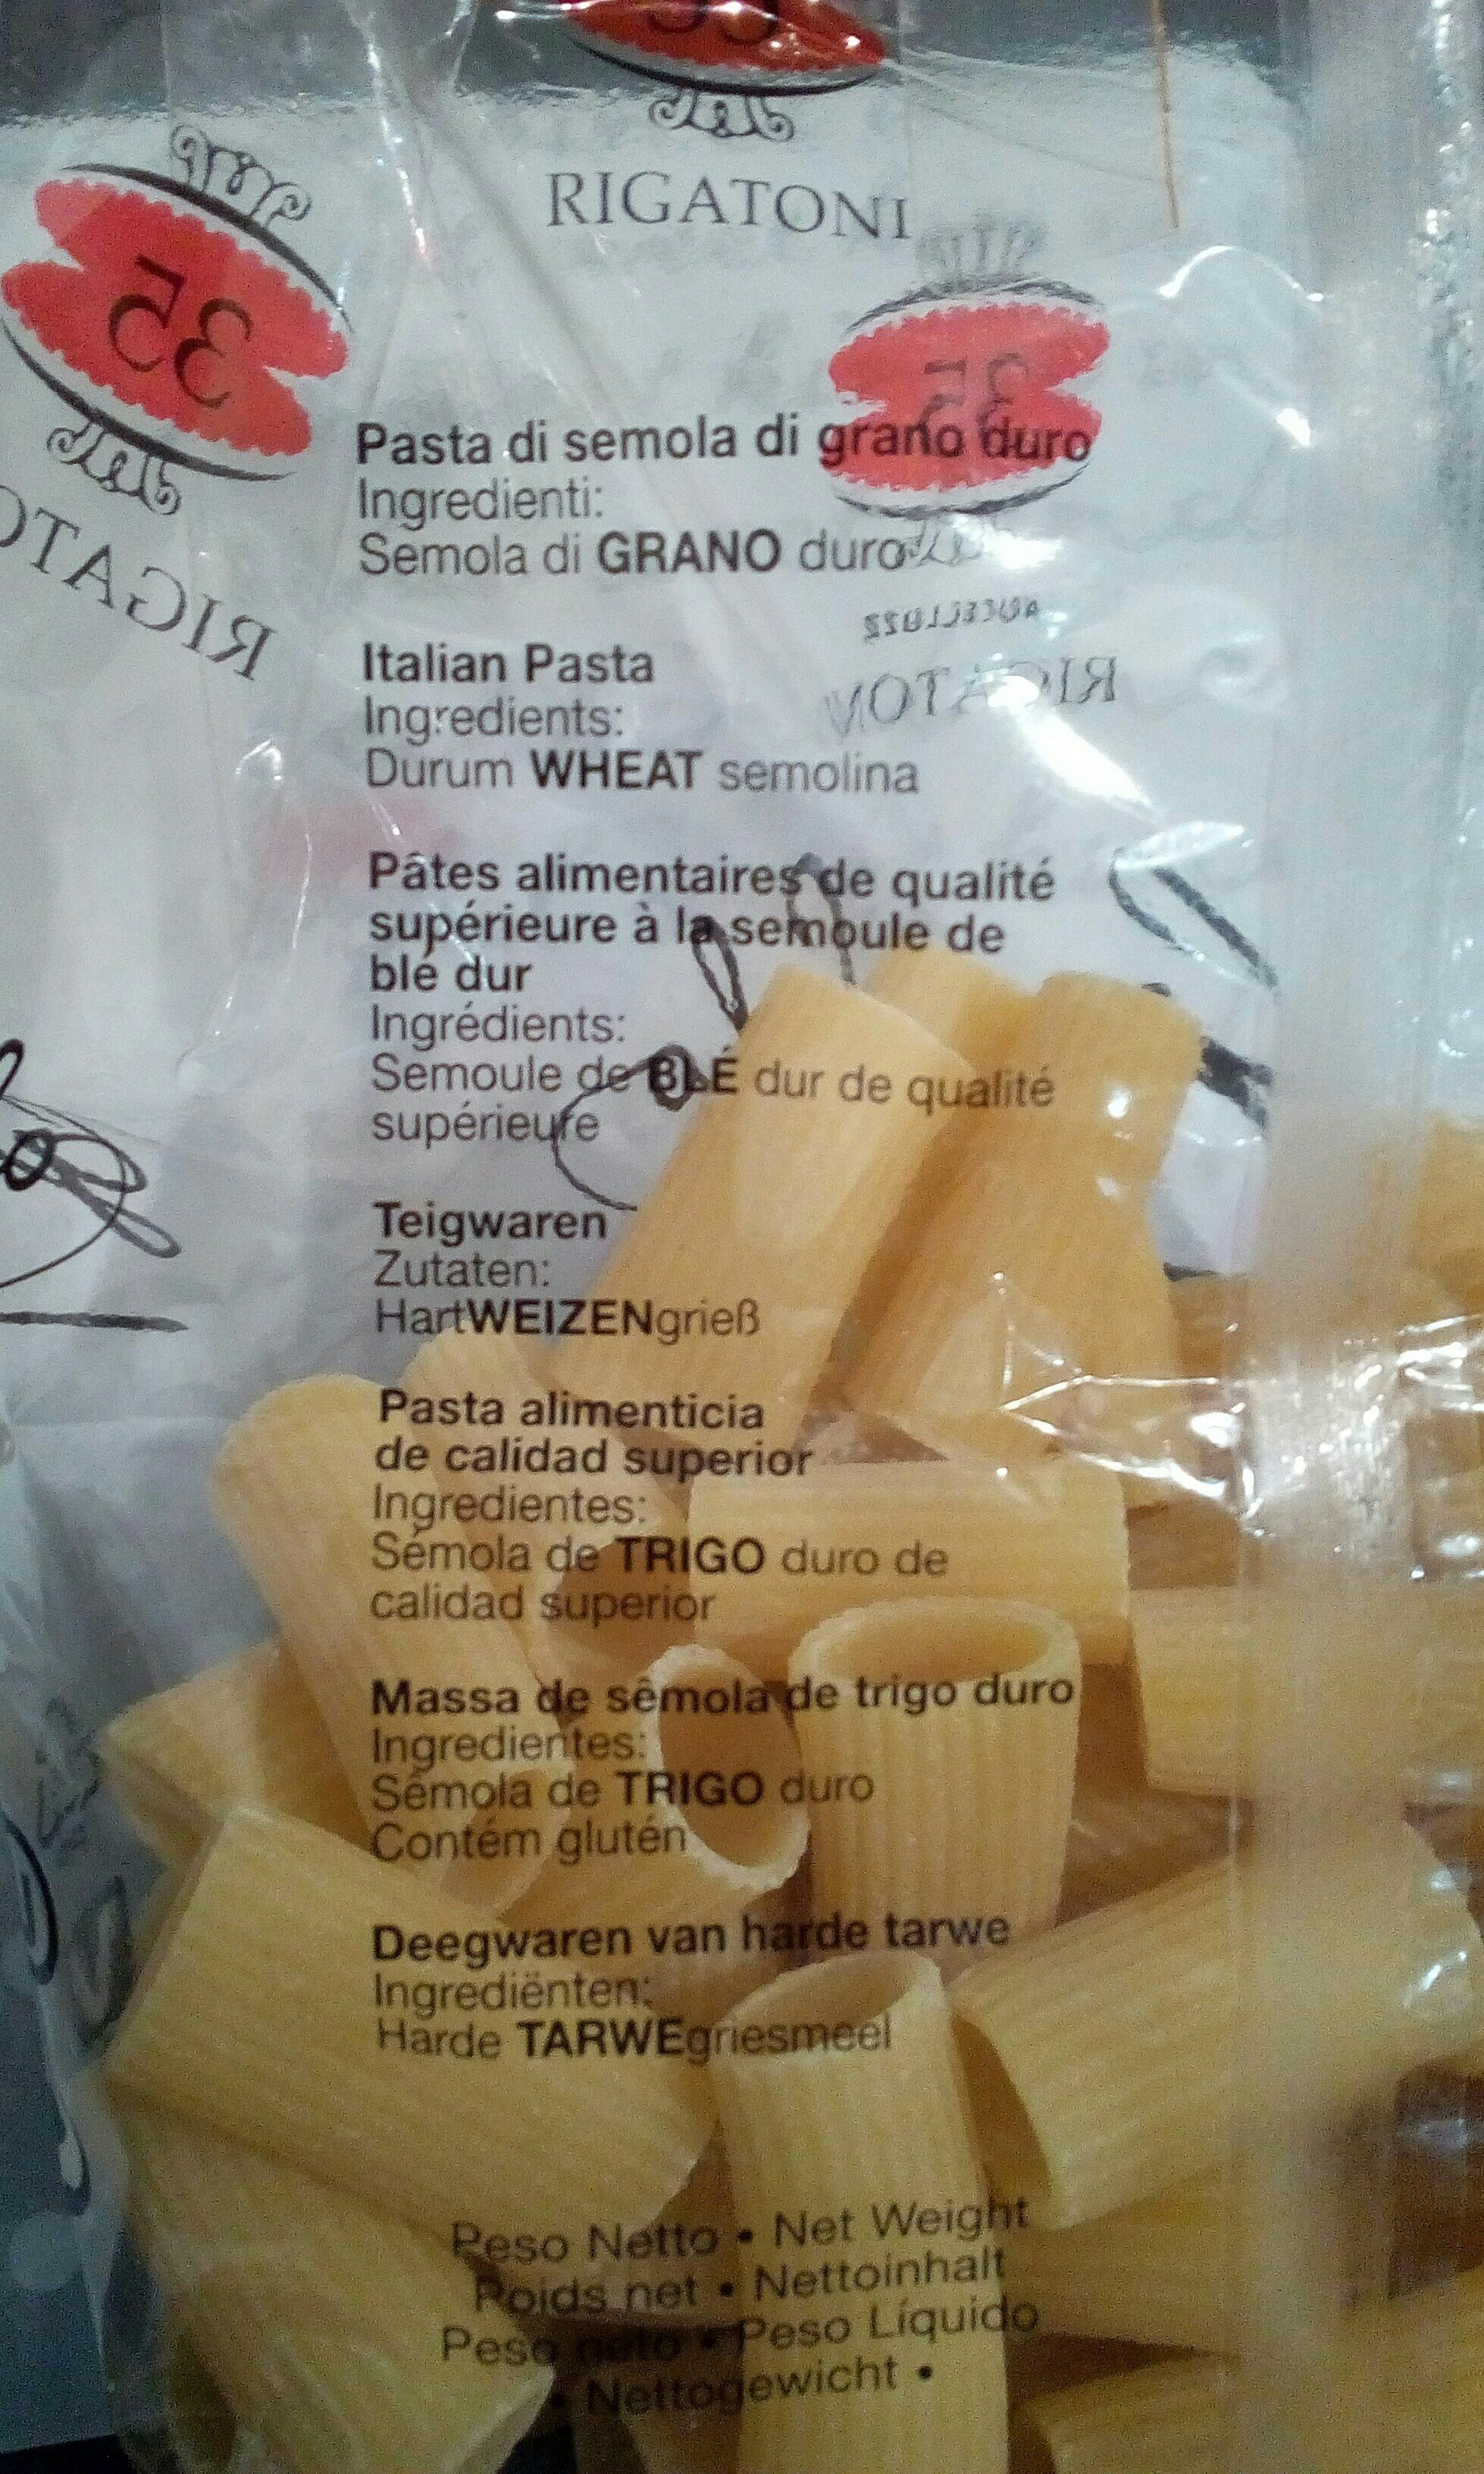 Rigatoni - Ingredients - fr